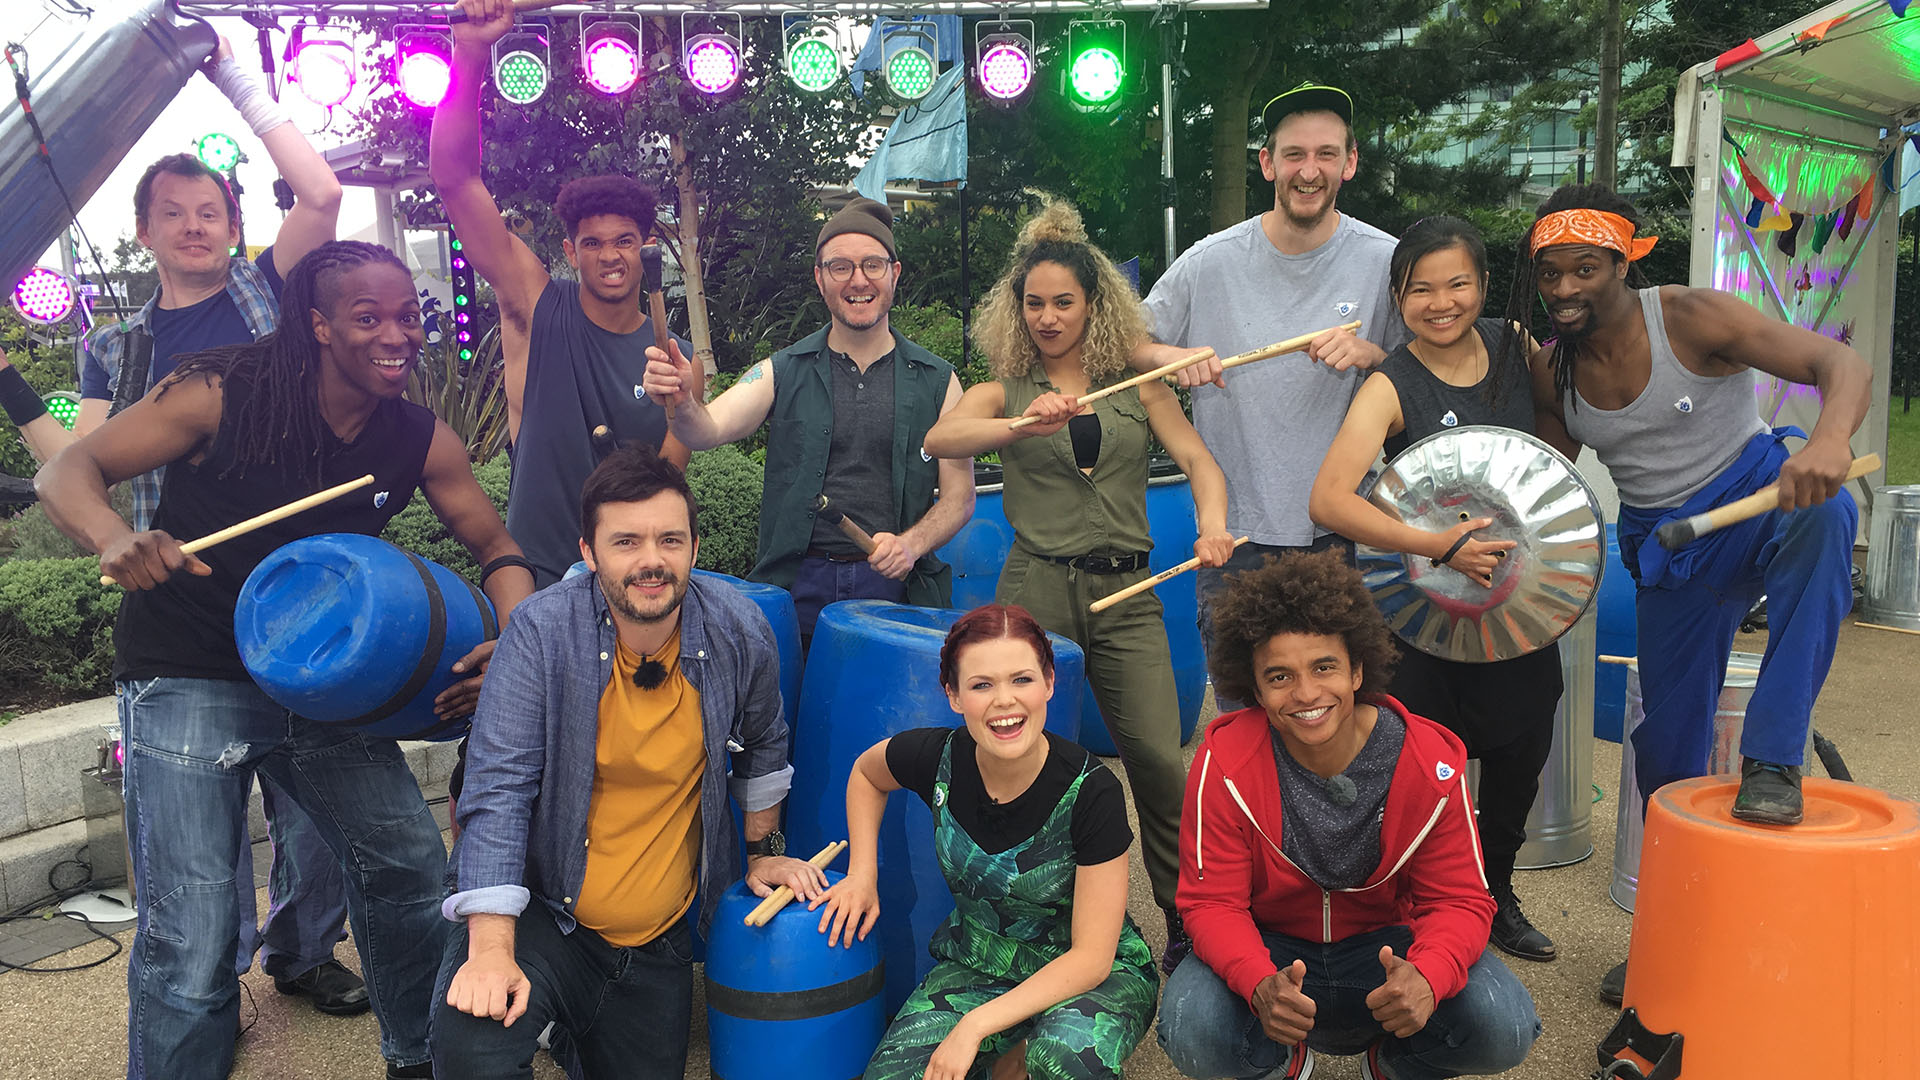 Stomp on Blue Peter 2017, James Lane, Nigel Clarke, Christian Sharrier, Barney Harwood, Billy Hickling, Lindsey Russell, Daniella May, Radzi Chinyanganya, Fred Nye, Nicola Chang, Omari Carter